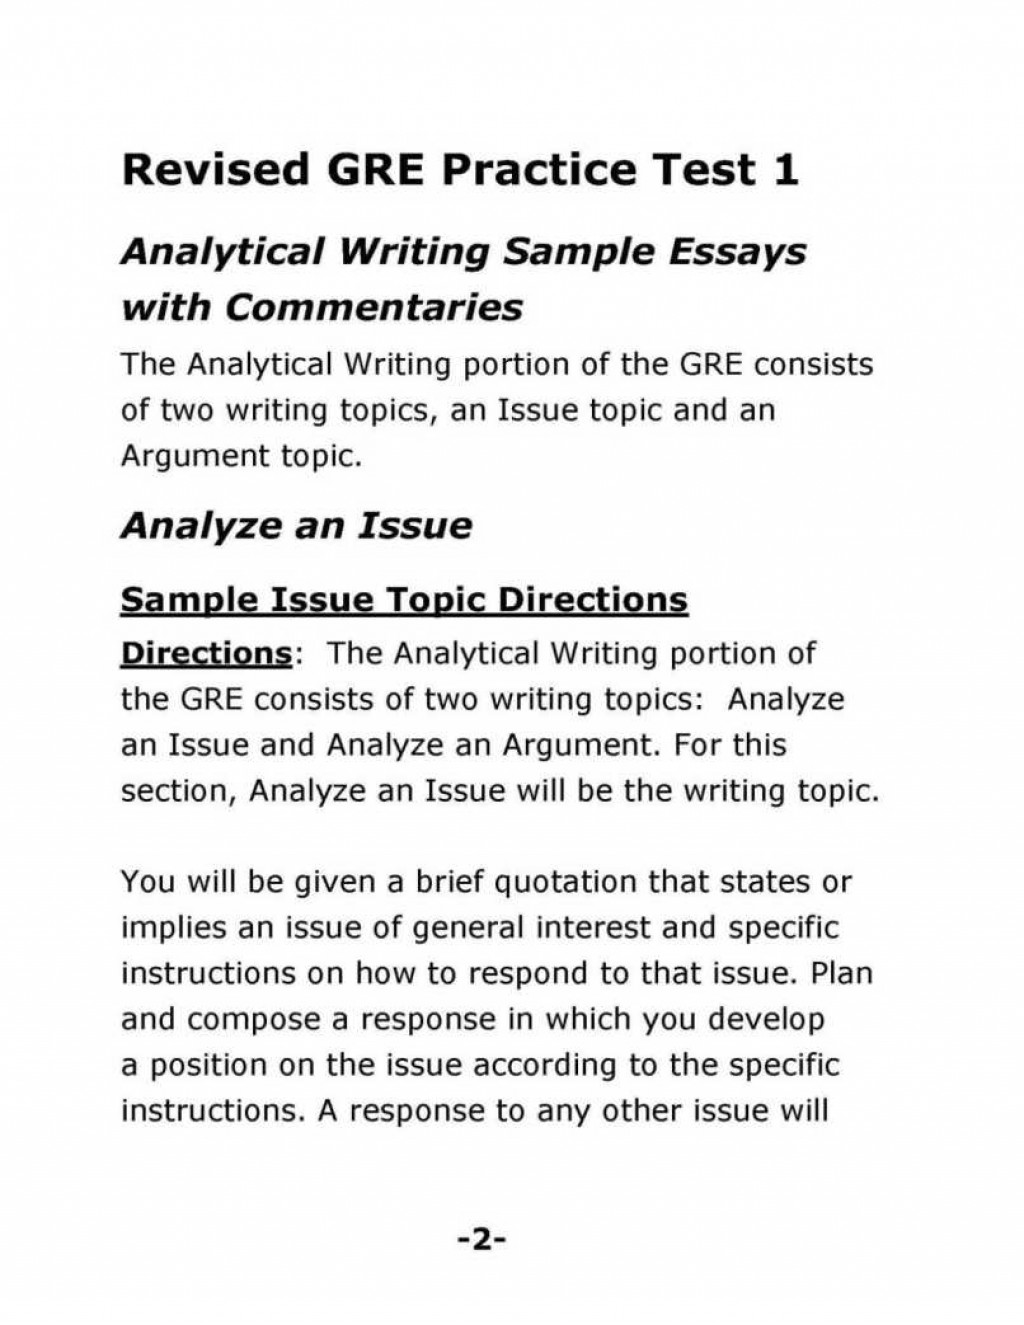 005 How To Write Gre Argument Essay Formatted Resume Example Template Sample Test Papers With Soluti Samples Length Rhesus Monkey Questions Score Pool Prompt Unusual Answers Solutions Large